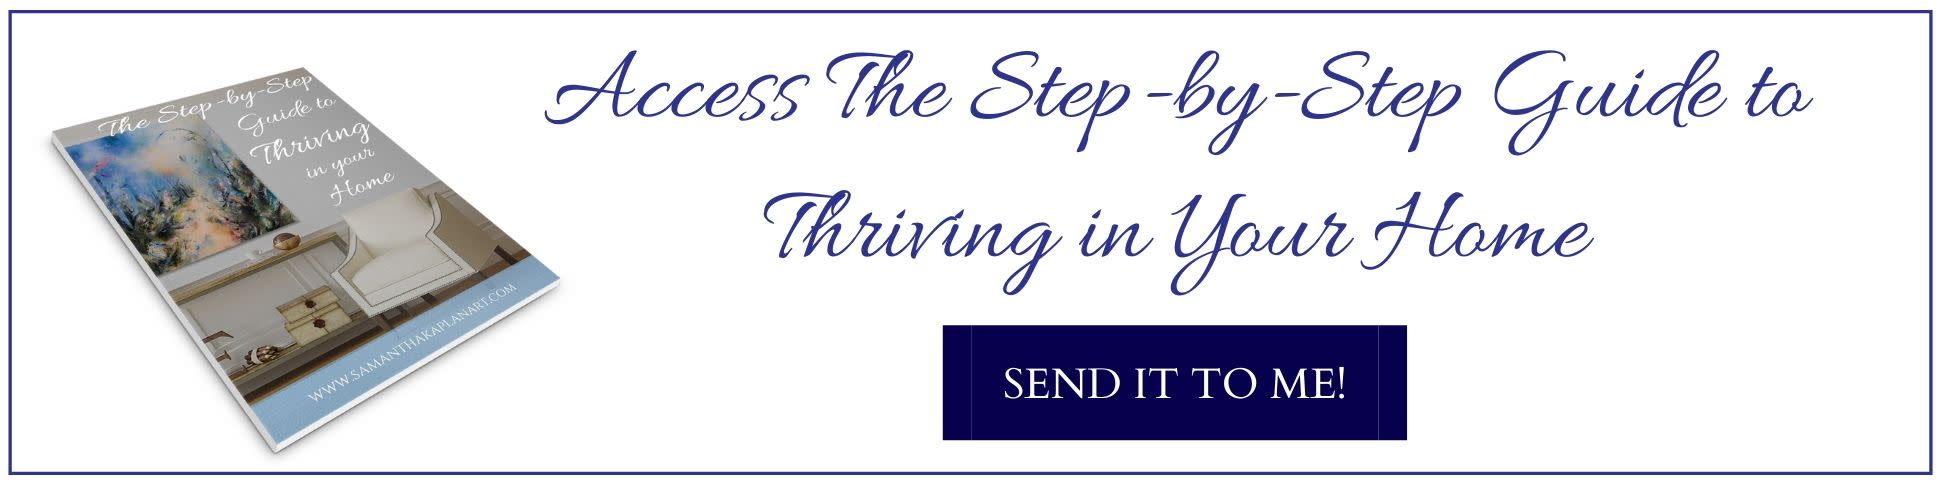 <div class='title'>           Access The Step by Step Guide to Thriving in Your Home         </div>                 <div class='description'>                    </div>